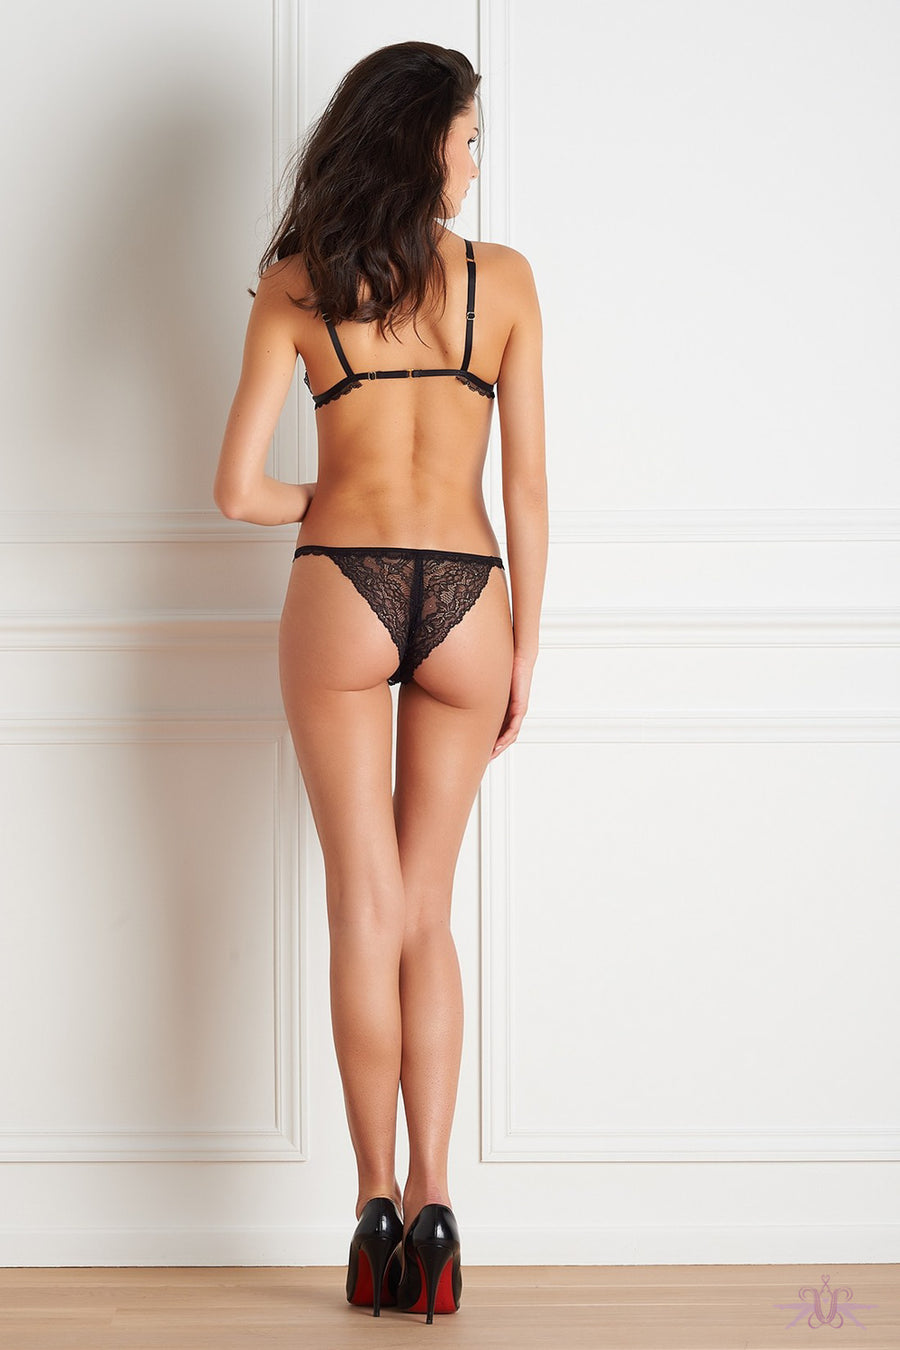 Maison Close Le Petit Secret Dentelle Openable Tanga - Mayfair Stockings